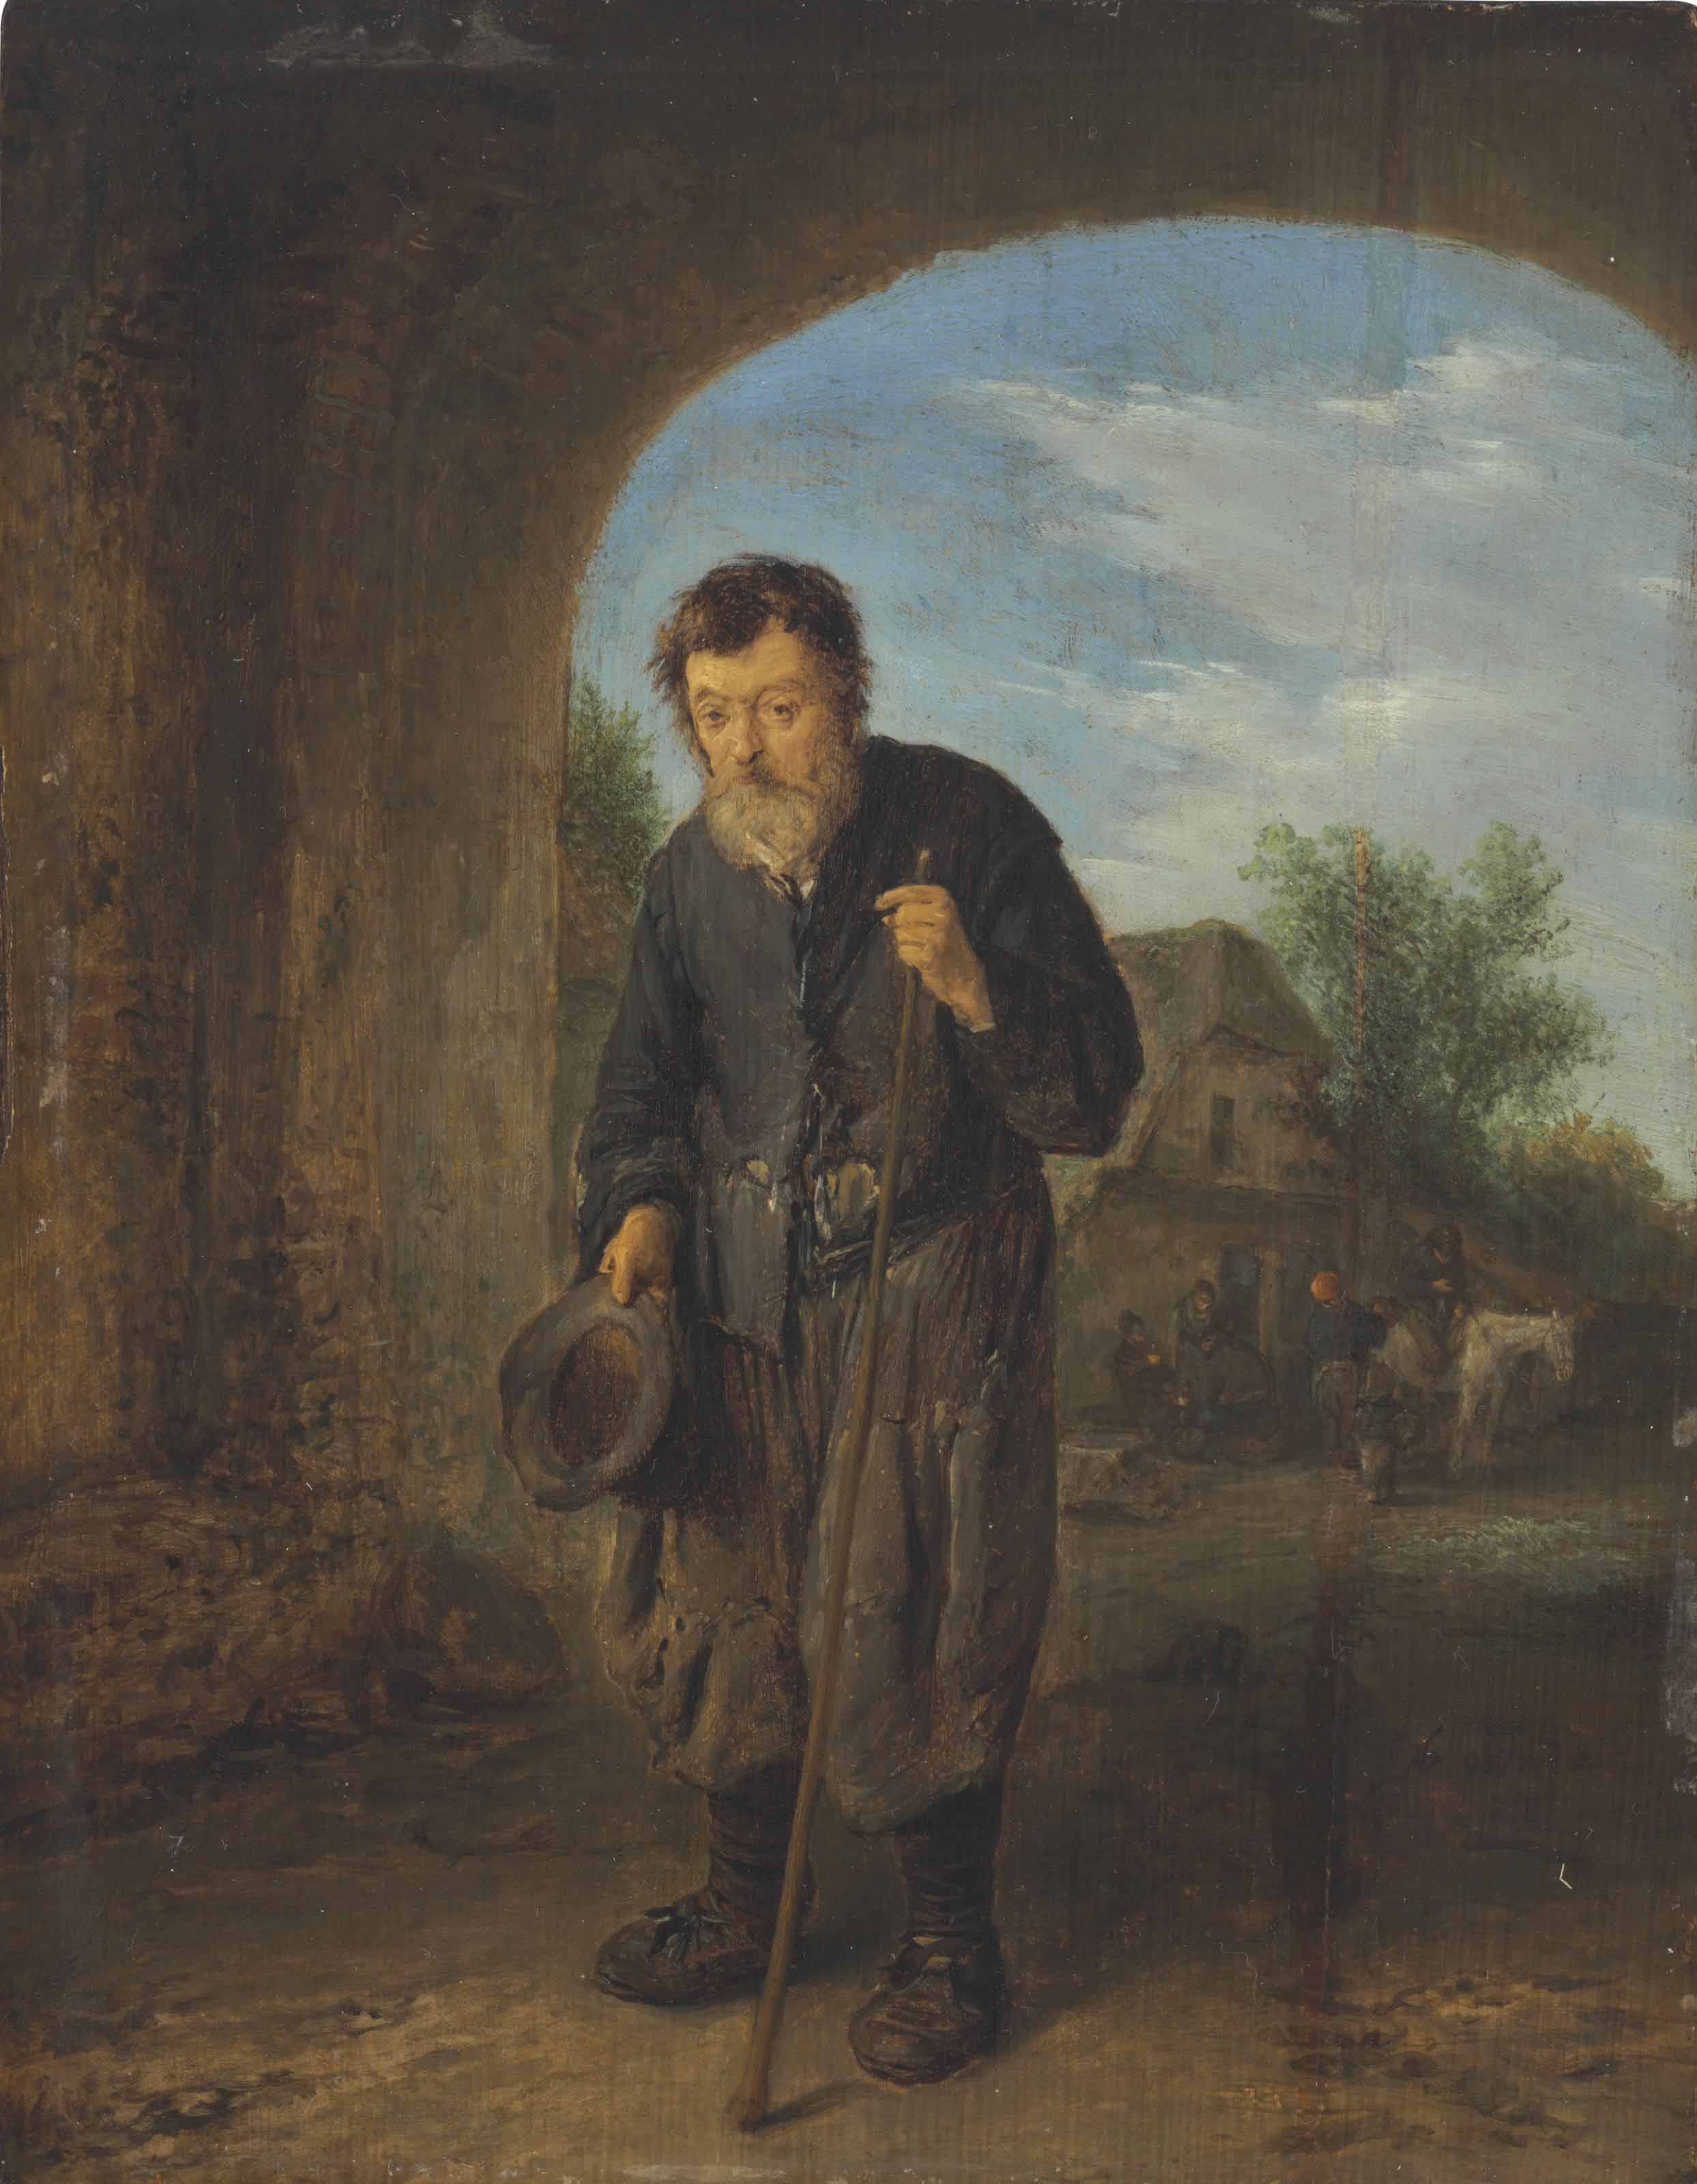 A mendicant with a walking stick under an archway, travellers by an inn beyond